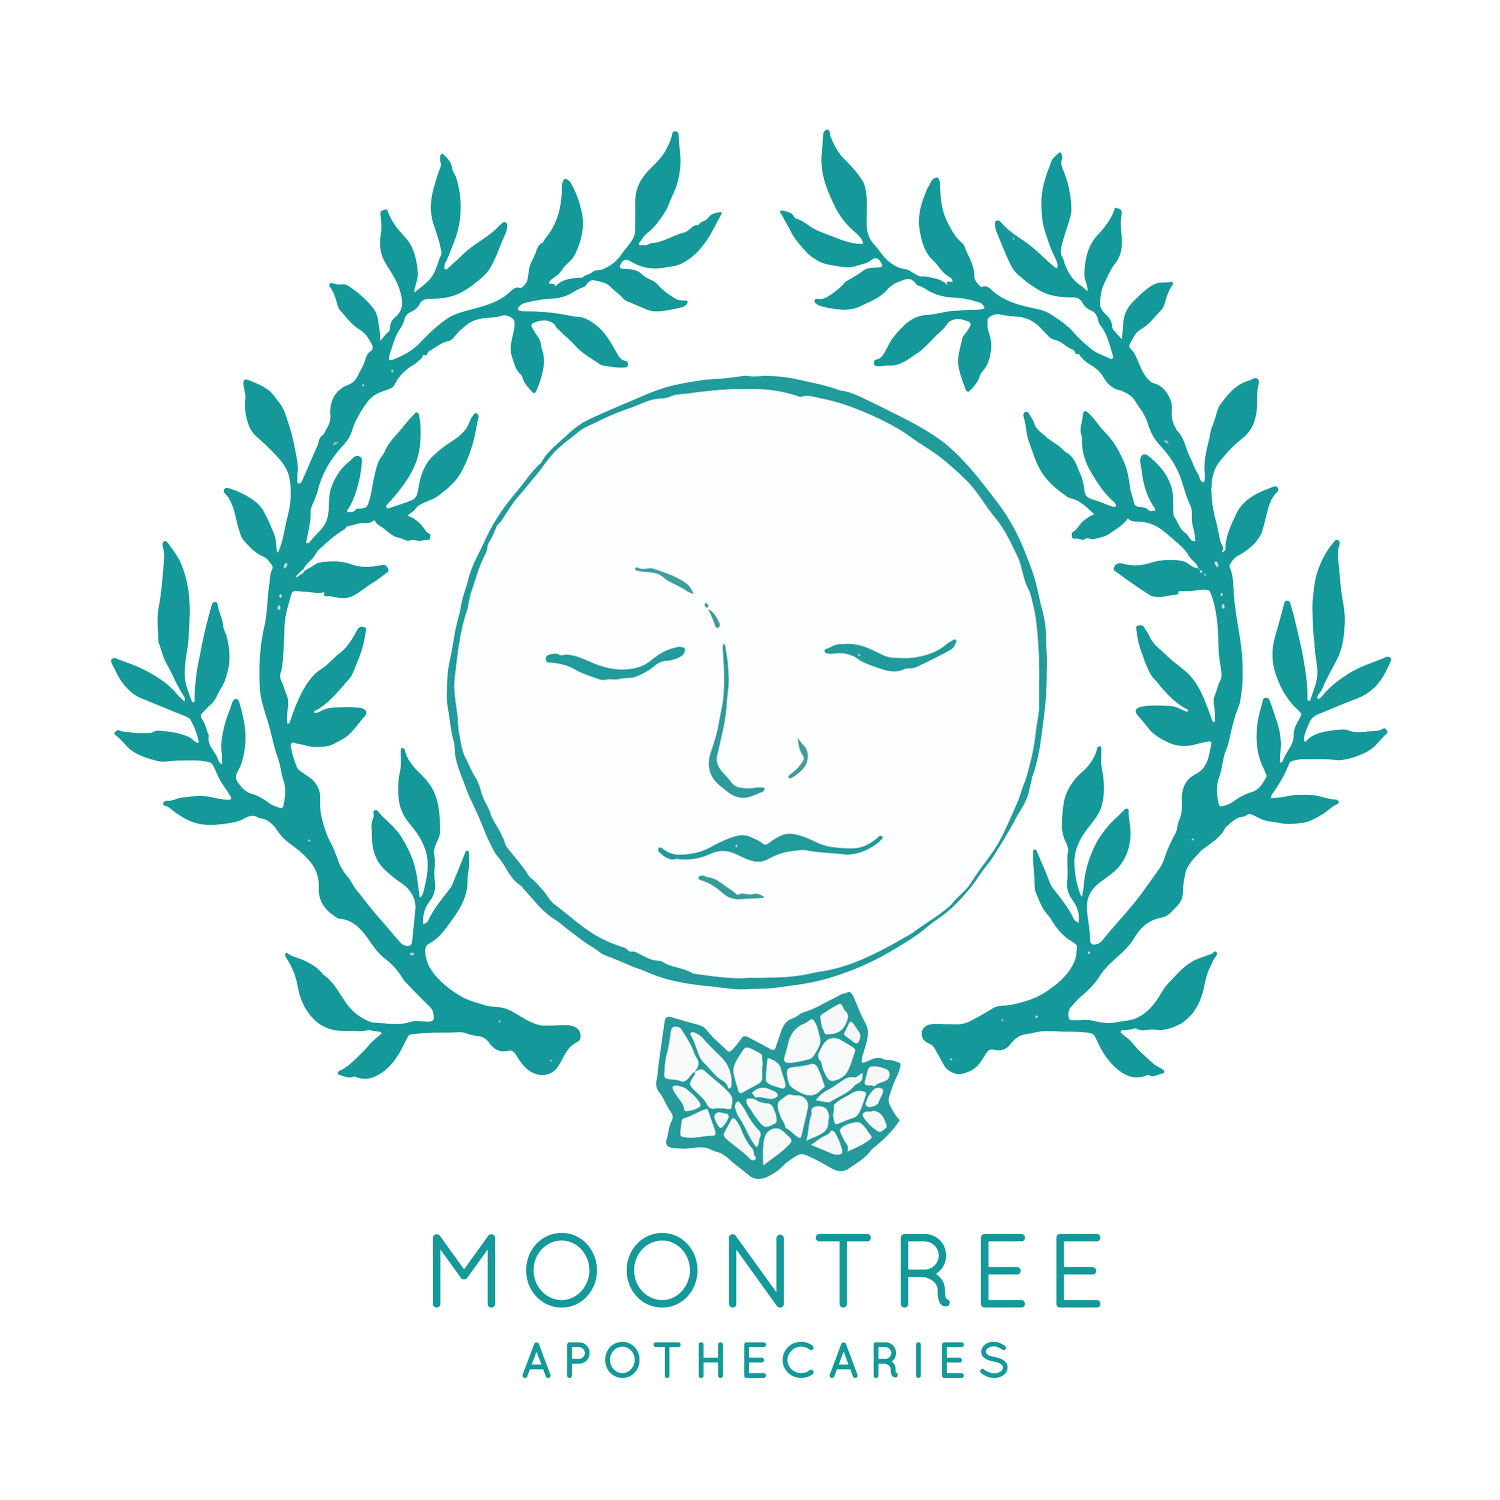 Moontree Apothecaries